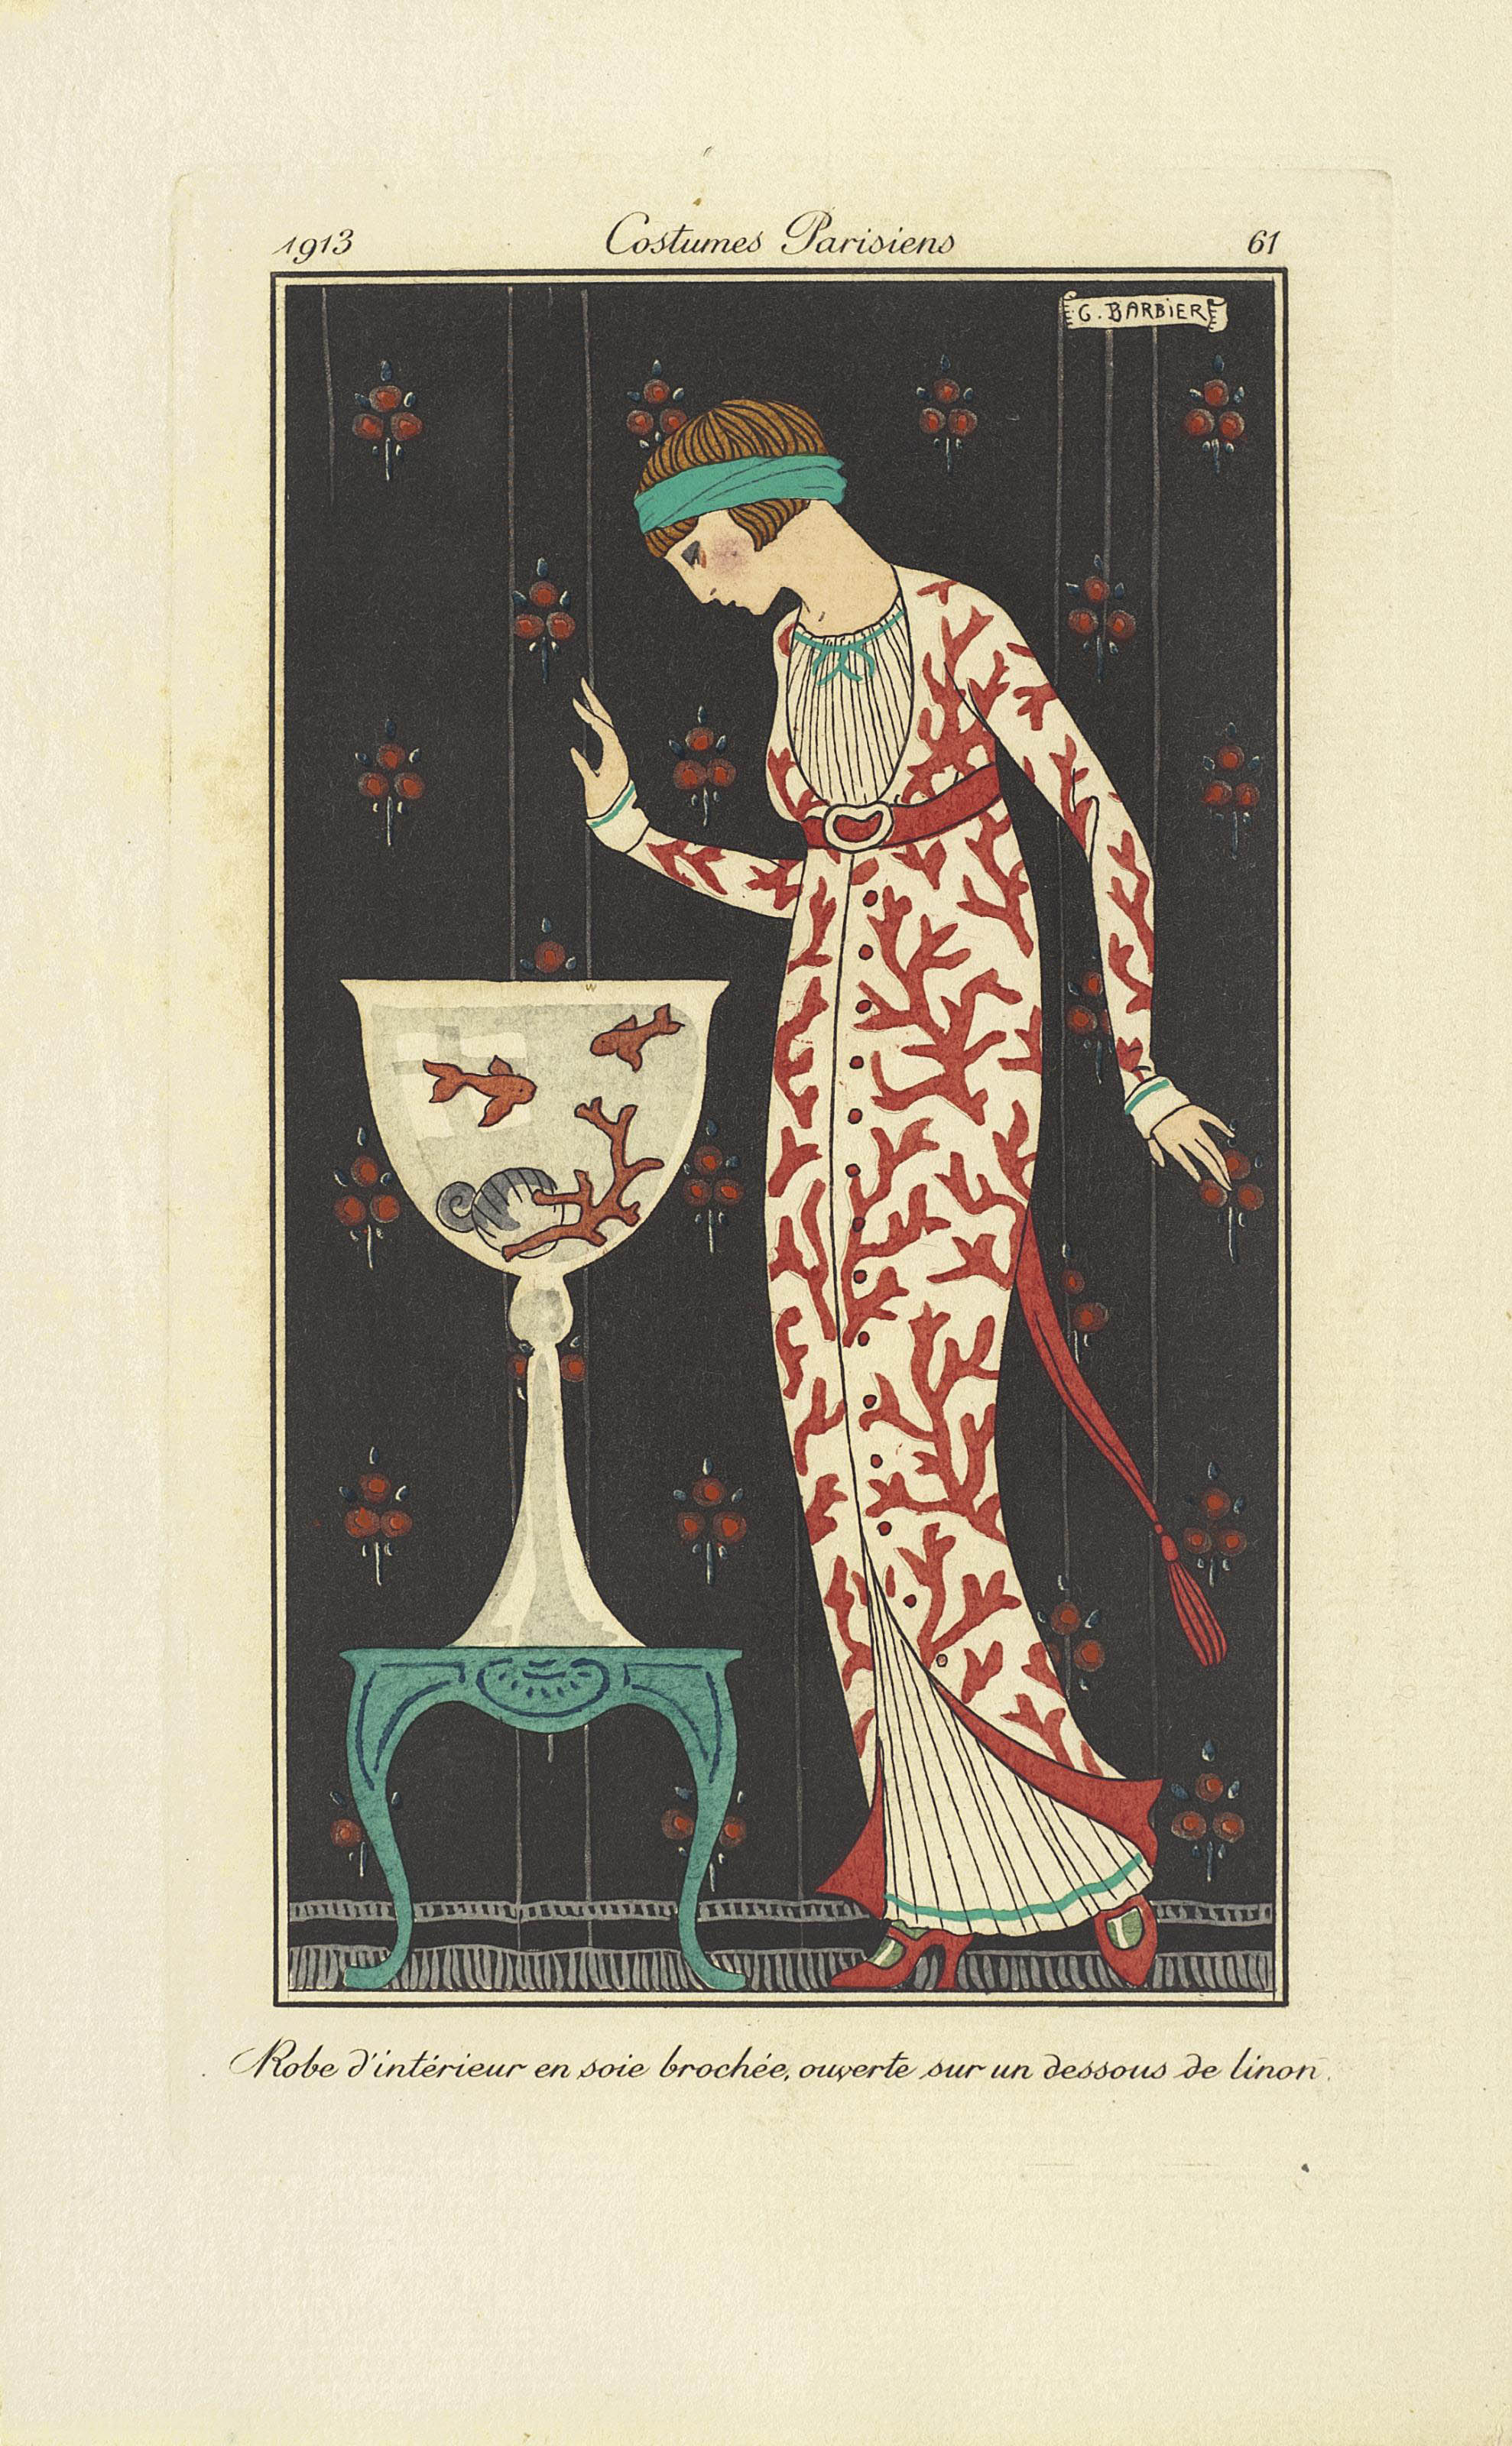 BARBIER, Georges (1882-1932). Journal des Dames et des Modes. Paris: Aux Bureaux du Journal des Dames, 1913-14. Vols II- IV in 3 volumes, 8° (225 x 140mm). Half titles, 184 (of 185) fine hand- or pochoir-coloured plates by Georges Barbier and others, 60pp. of advertisements. (Lacking plate 74, but with an additional unnumbered plate.) Unbound in a contemporary half red morocco box (worn).